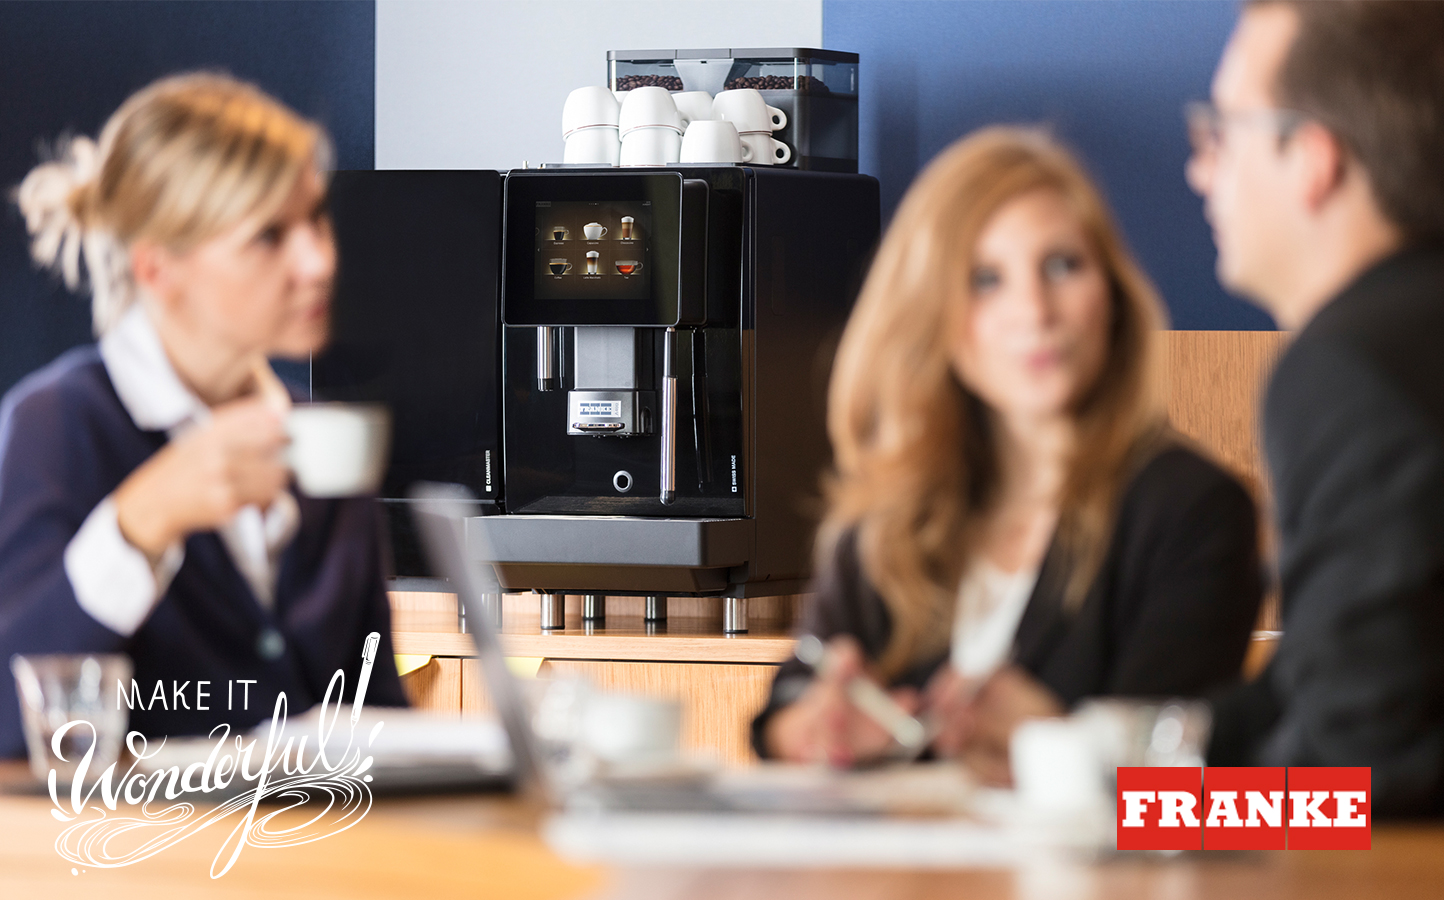 Franke Coffee Systems Franke Coffee Systems Strengthens Its Presence In The Italian